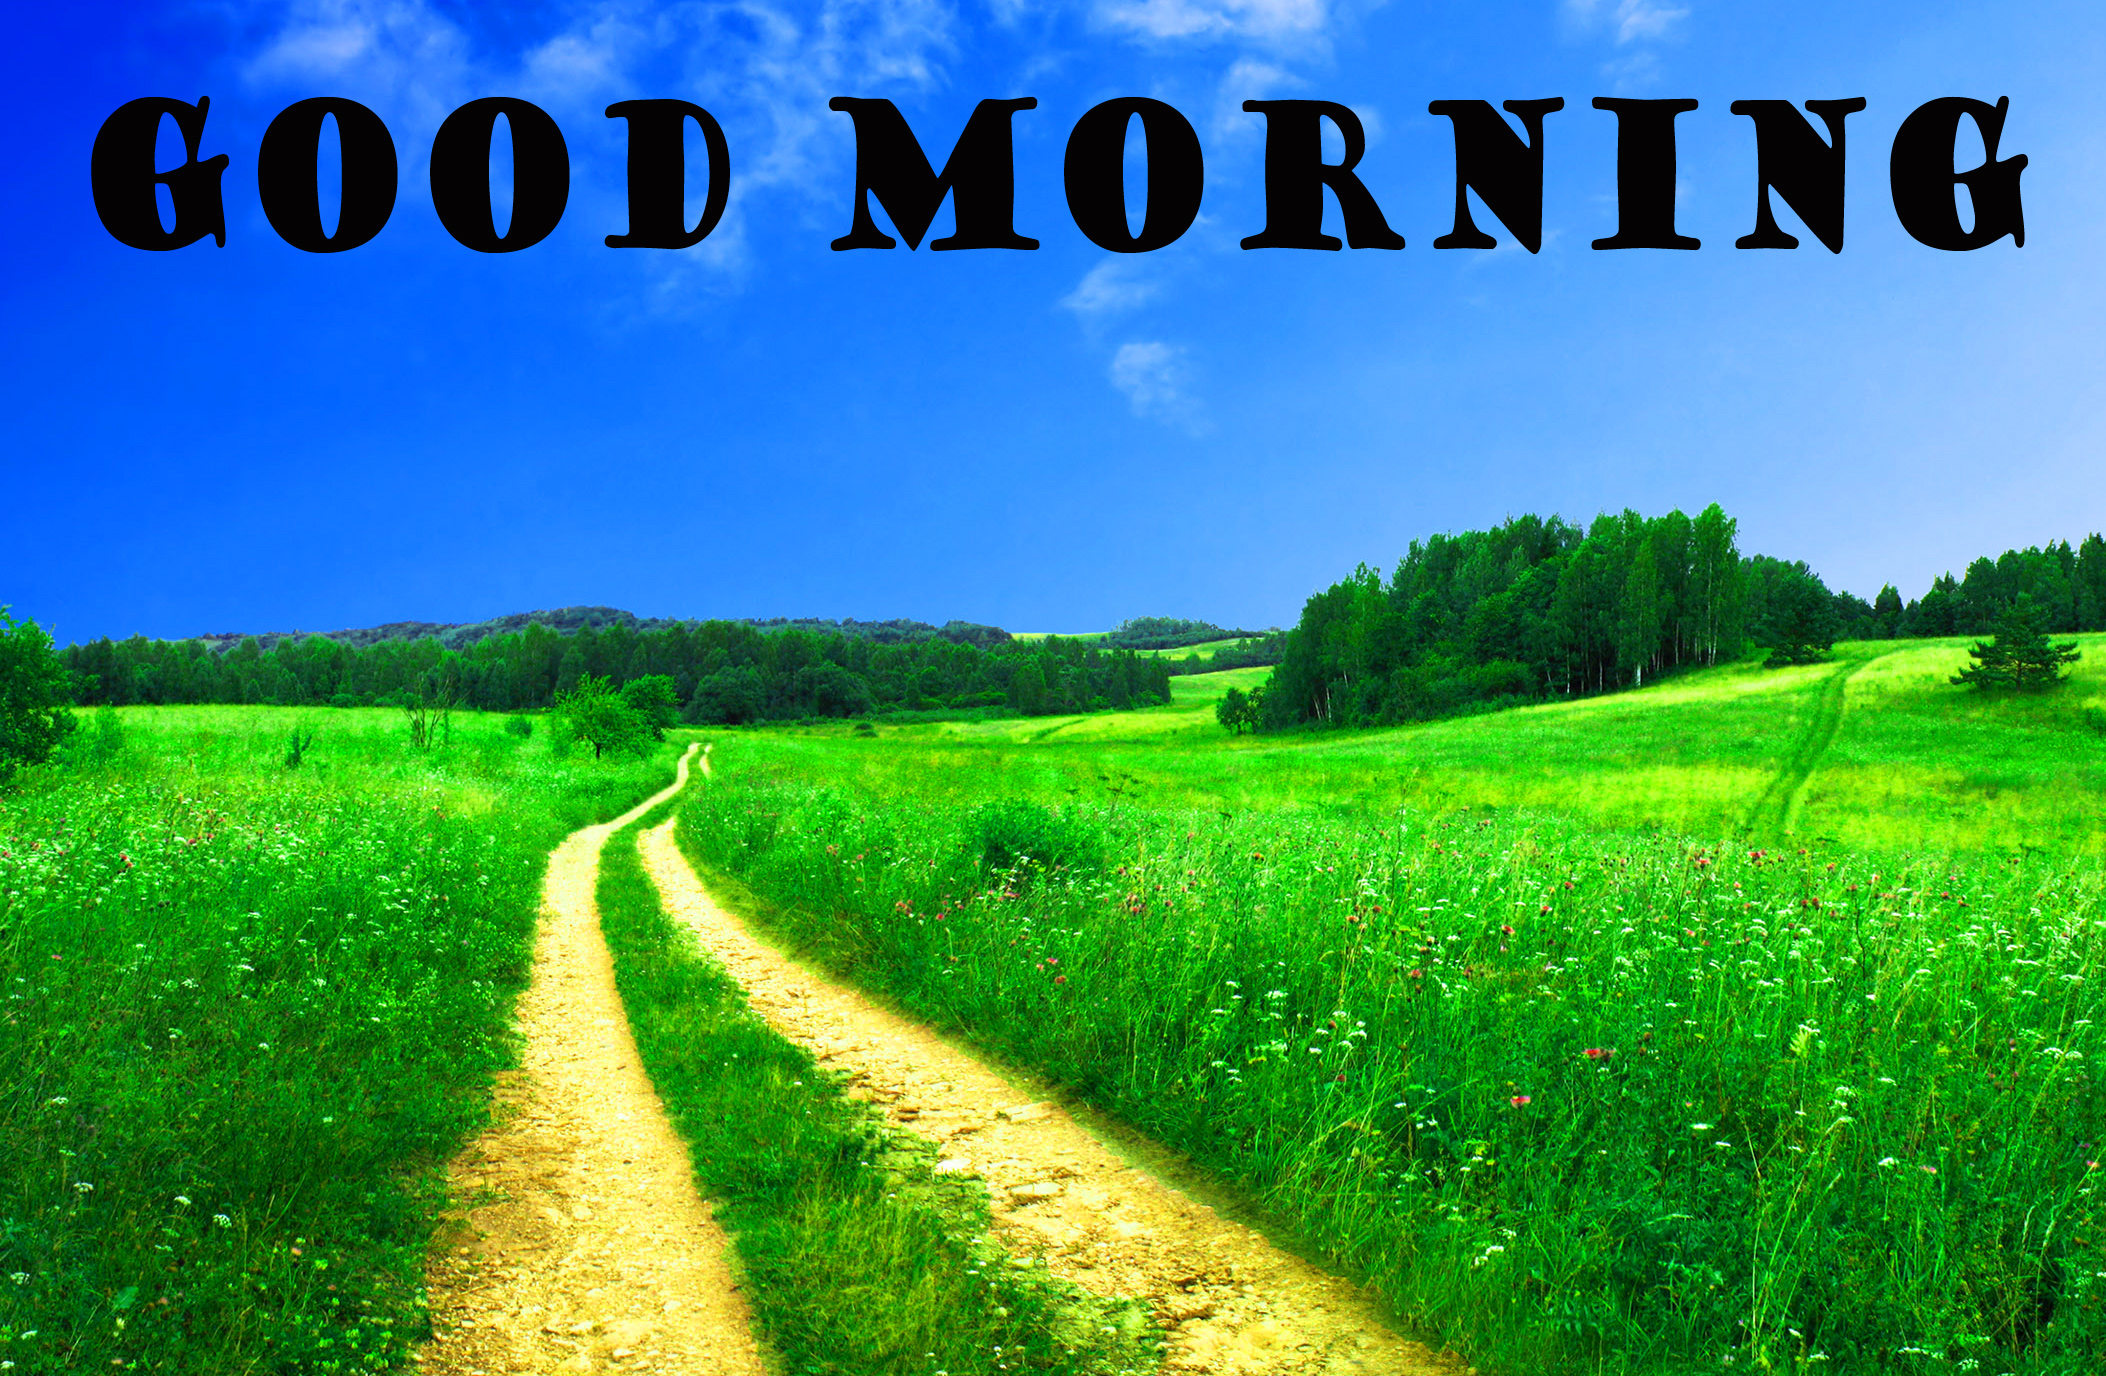 गुड मॉर्निंग New Wonderful Good Morning Images Photo Wallpaper Free Download